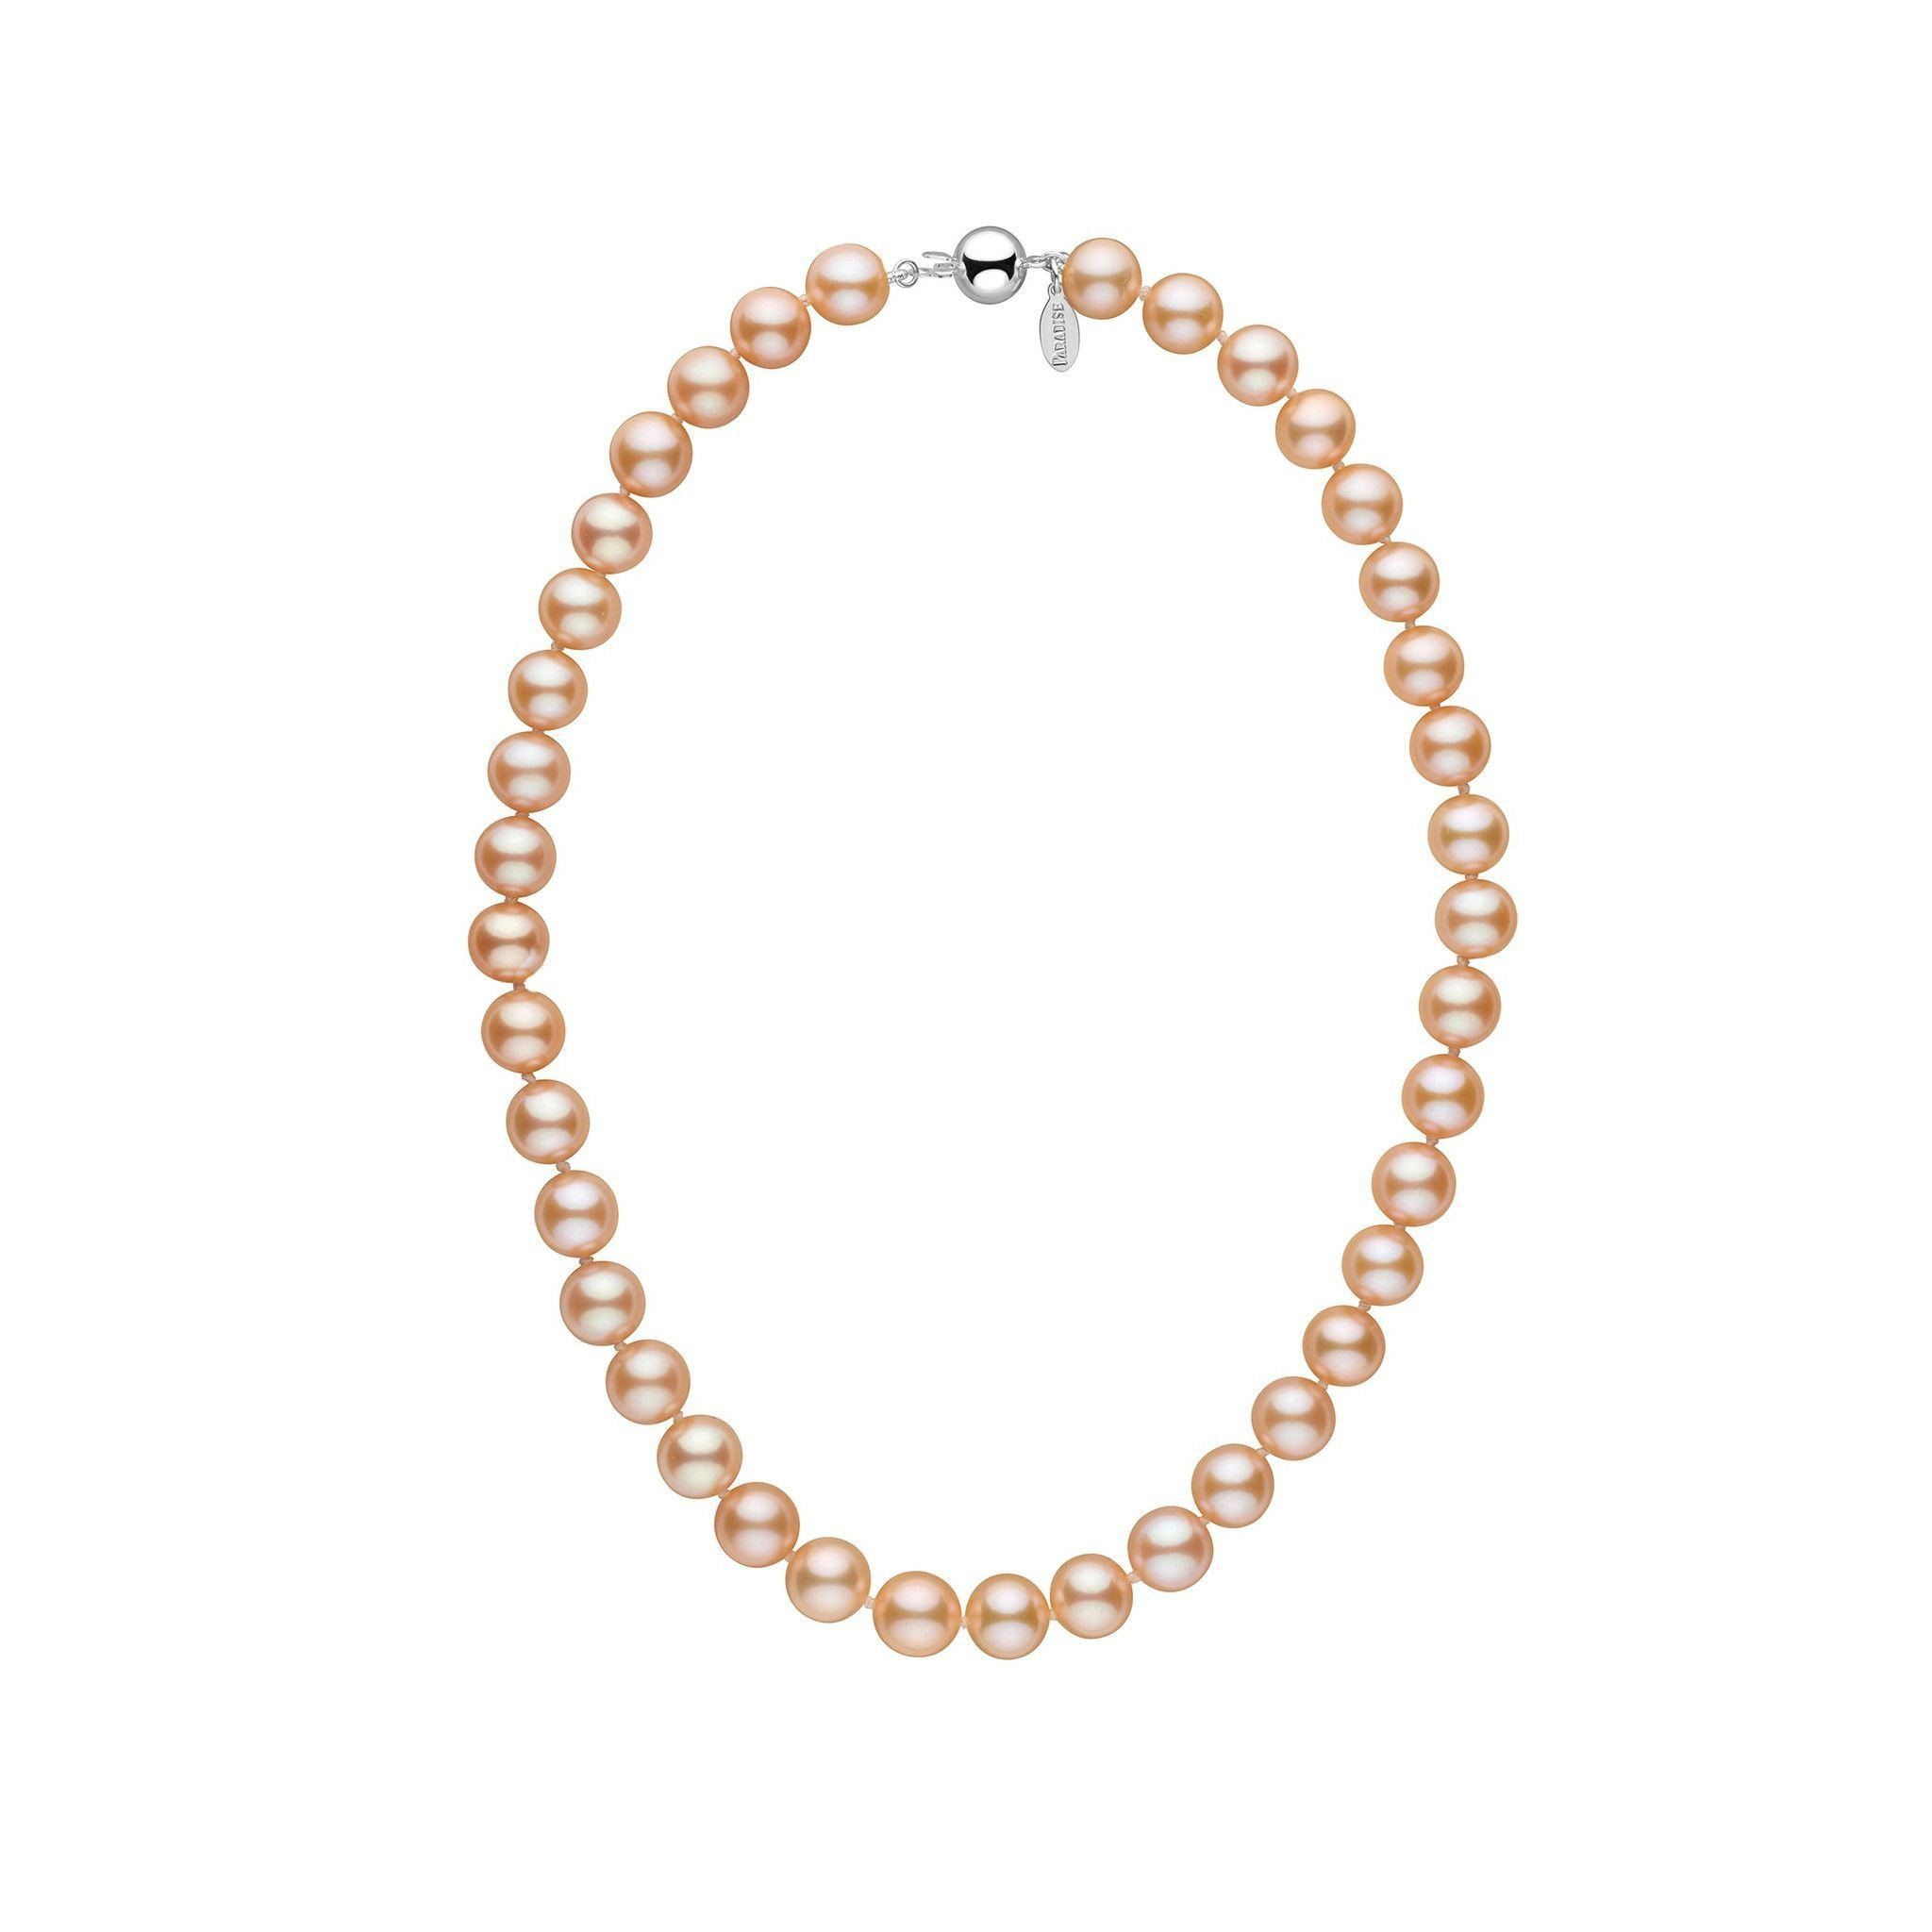 9.0-9.5 mm 16 Inch Pink to Peach Freshadama Freshwater Pearl Necklace